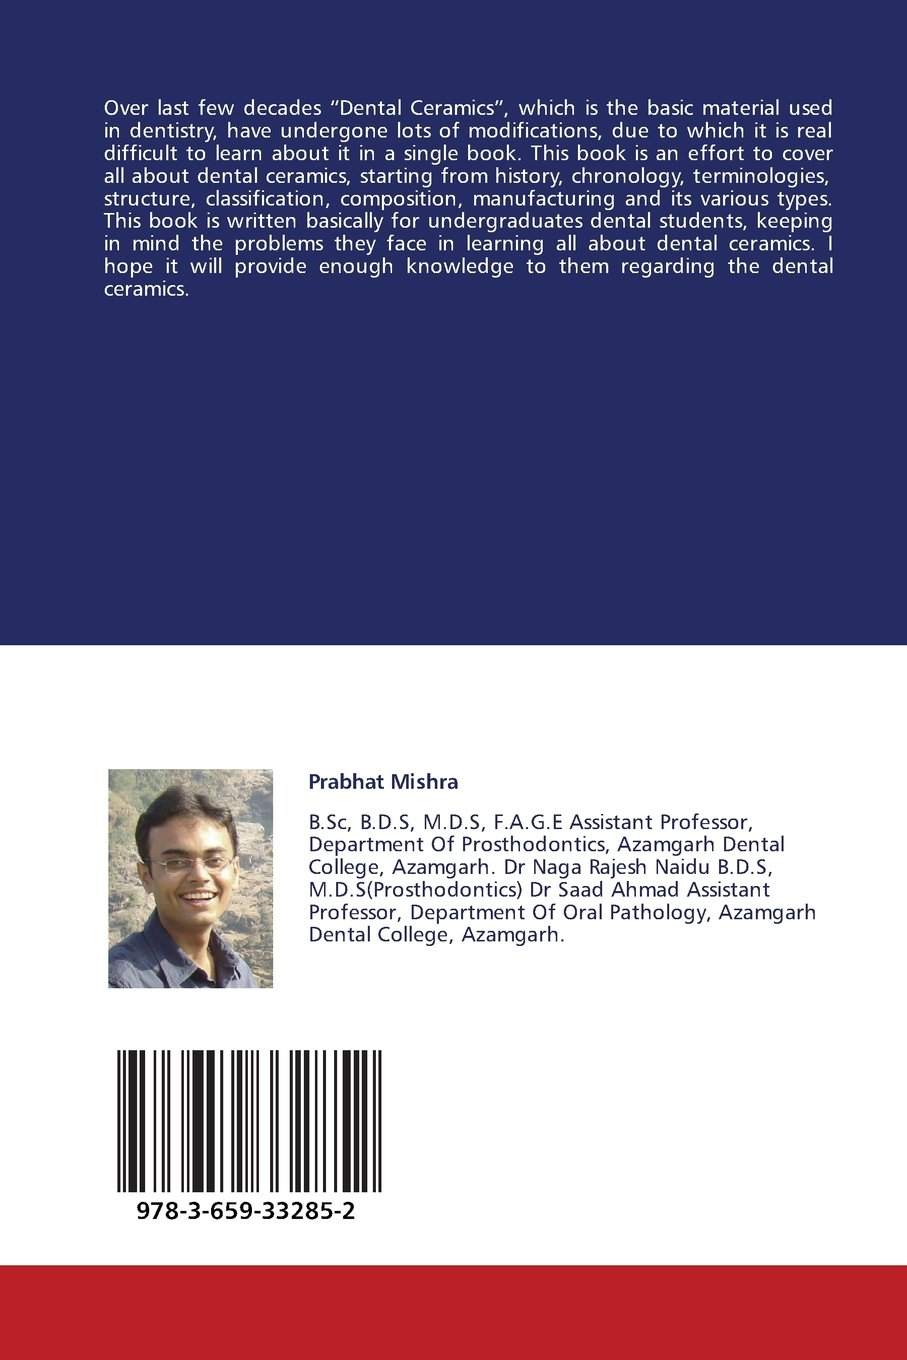 Dental Ceramics: A Review Prabhat Mishra, Naga Rajesh Naidu and Saad Ahmad